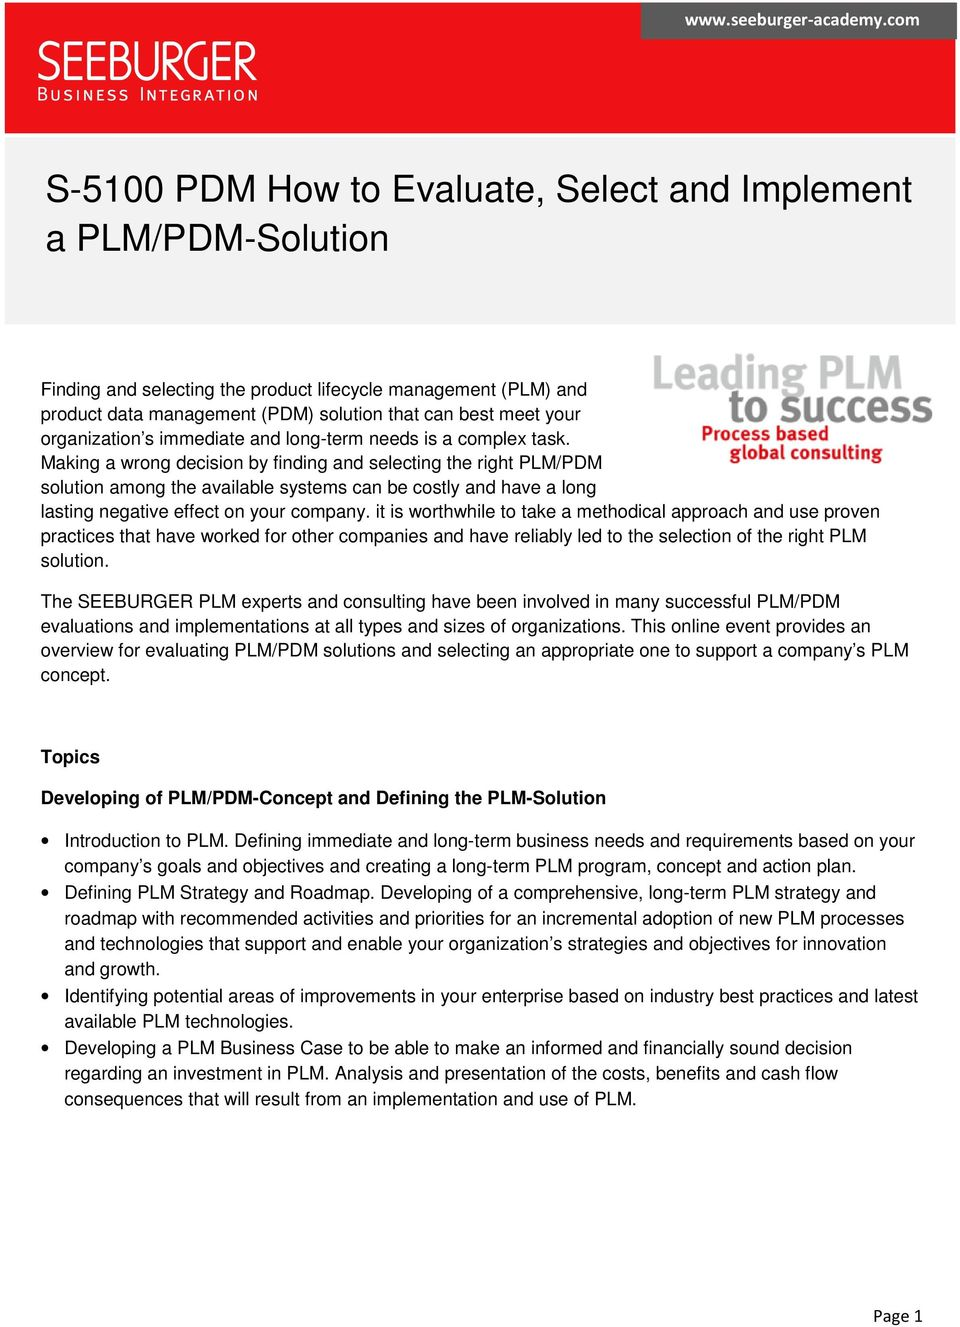 it is worthwhile to take a methodical approach and use proven practices that have worked for other companies and have reliably led to the selection of the right PLM solution.